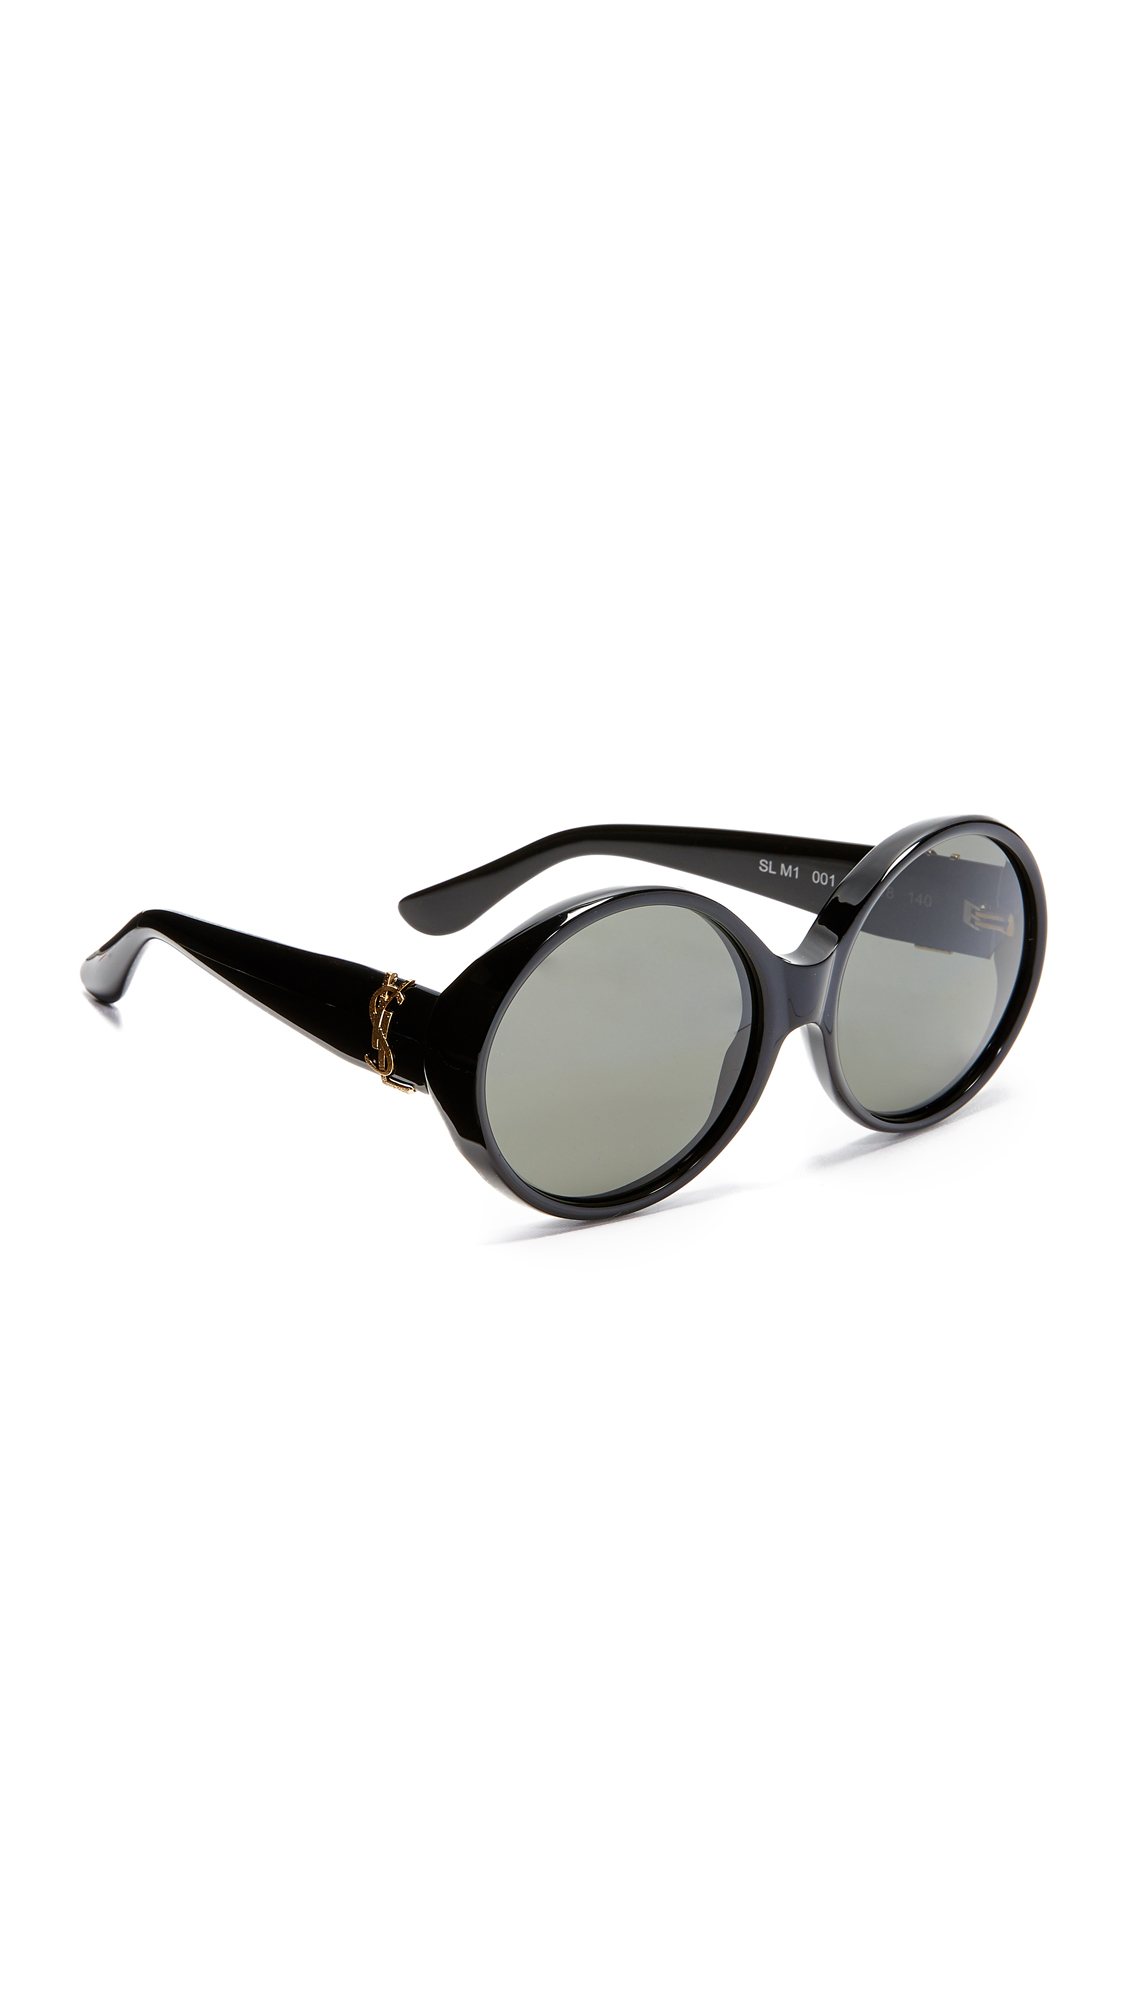 These sleek, vintage inspired Saint Laurent sunglasses have oversized, round lenses and engraved gold tone YSL lettering at the temples. Structured magnetic case and cleaning cloth included. Round frame. Non polarized lenses. Made in Italy. Measurements